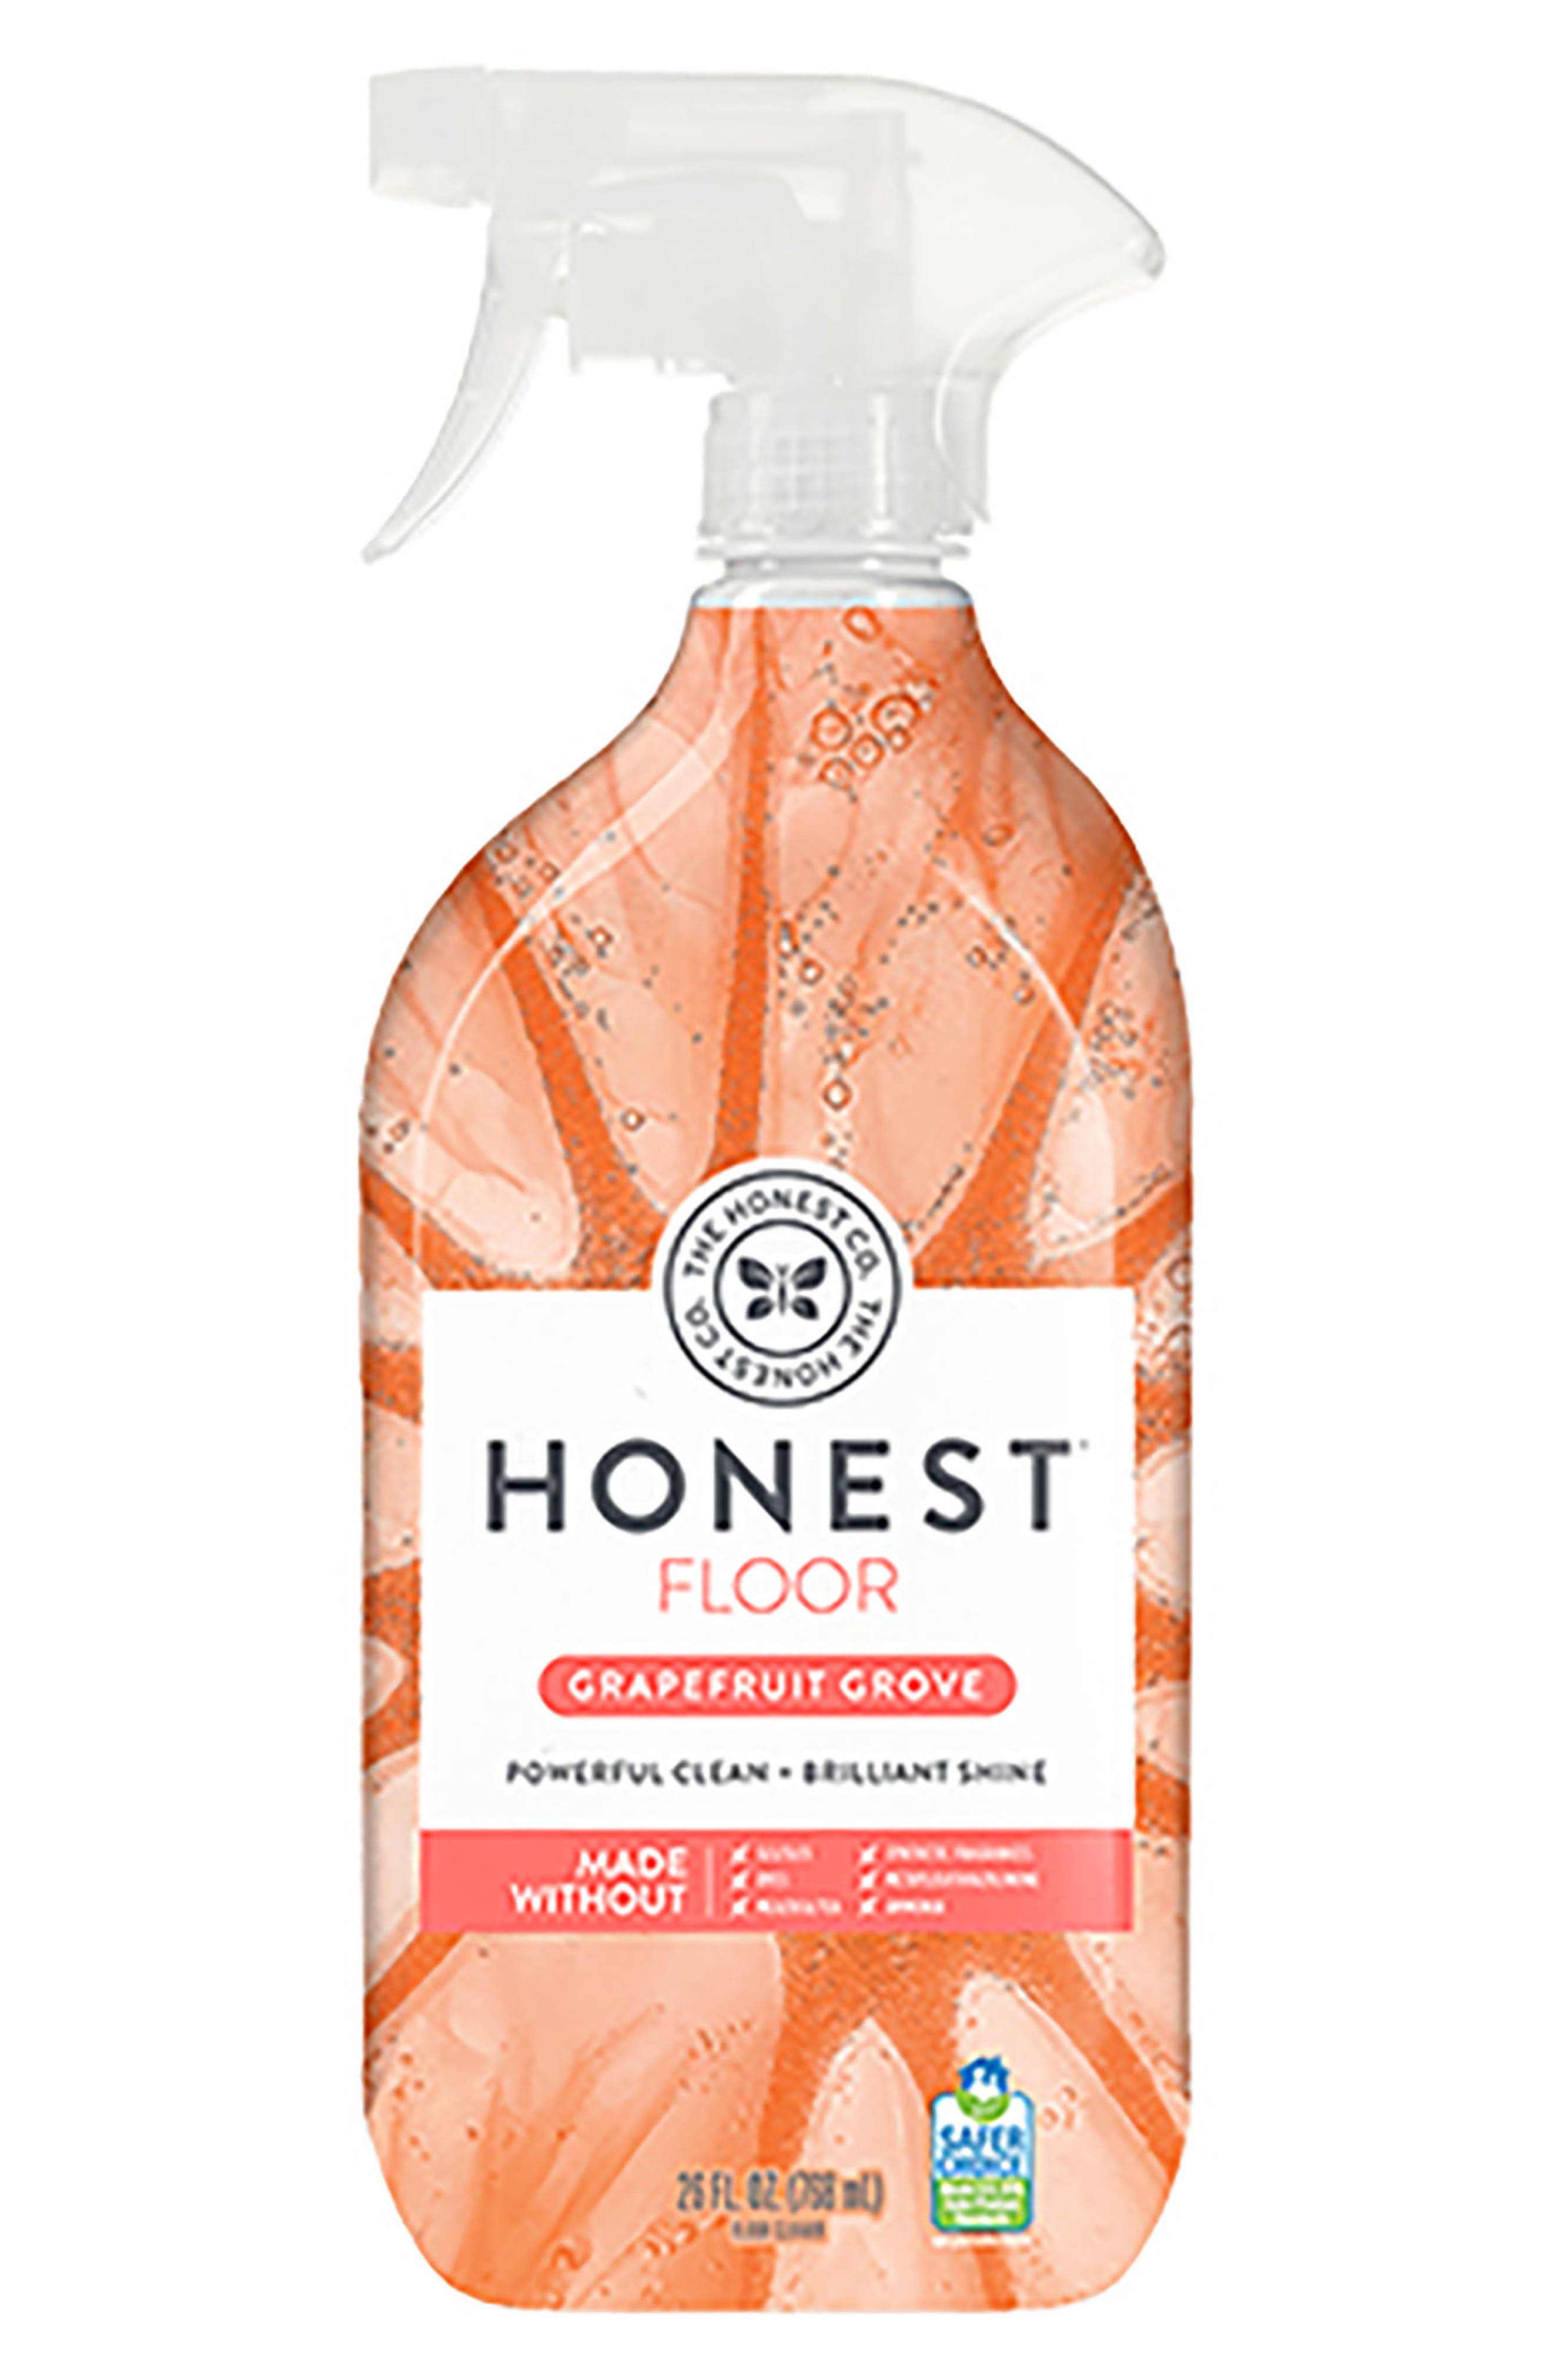 Alternate Image 1 Selected - The Honest Company Grapefruit Grove Floor Cleaner